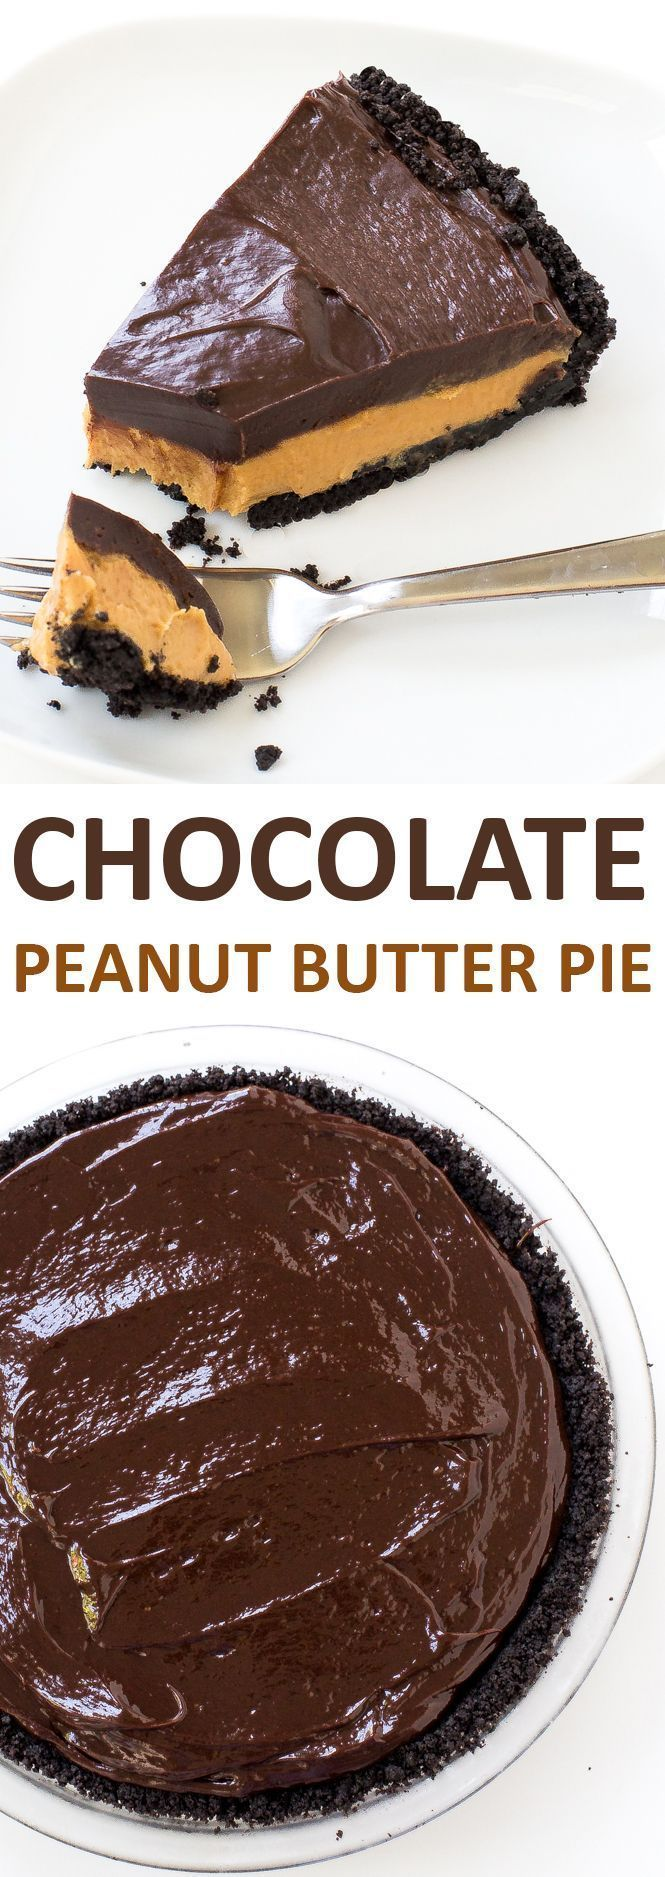 Super Easy No Bake Chocolate Peanut Butter Pie. Oreo Cookie Crust layered with a peanut butter filling and chocolate ganache! | chefsavvy.com #recipe #chocolate #peanut #dessert